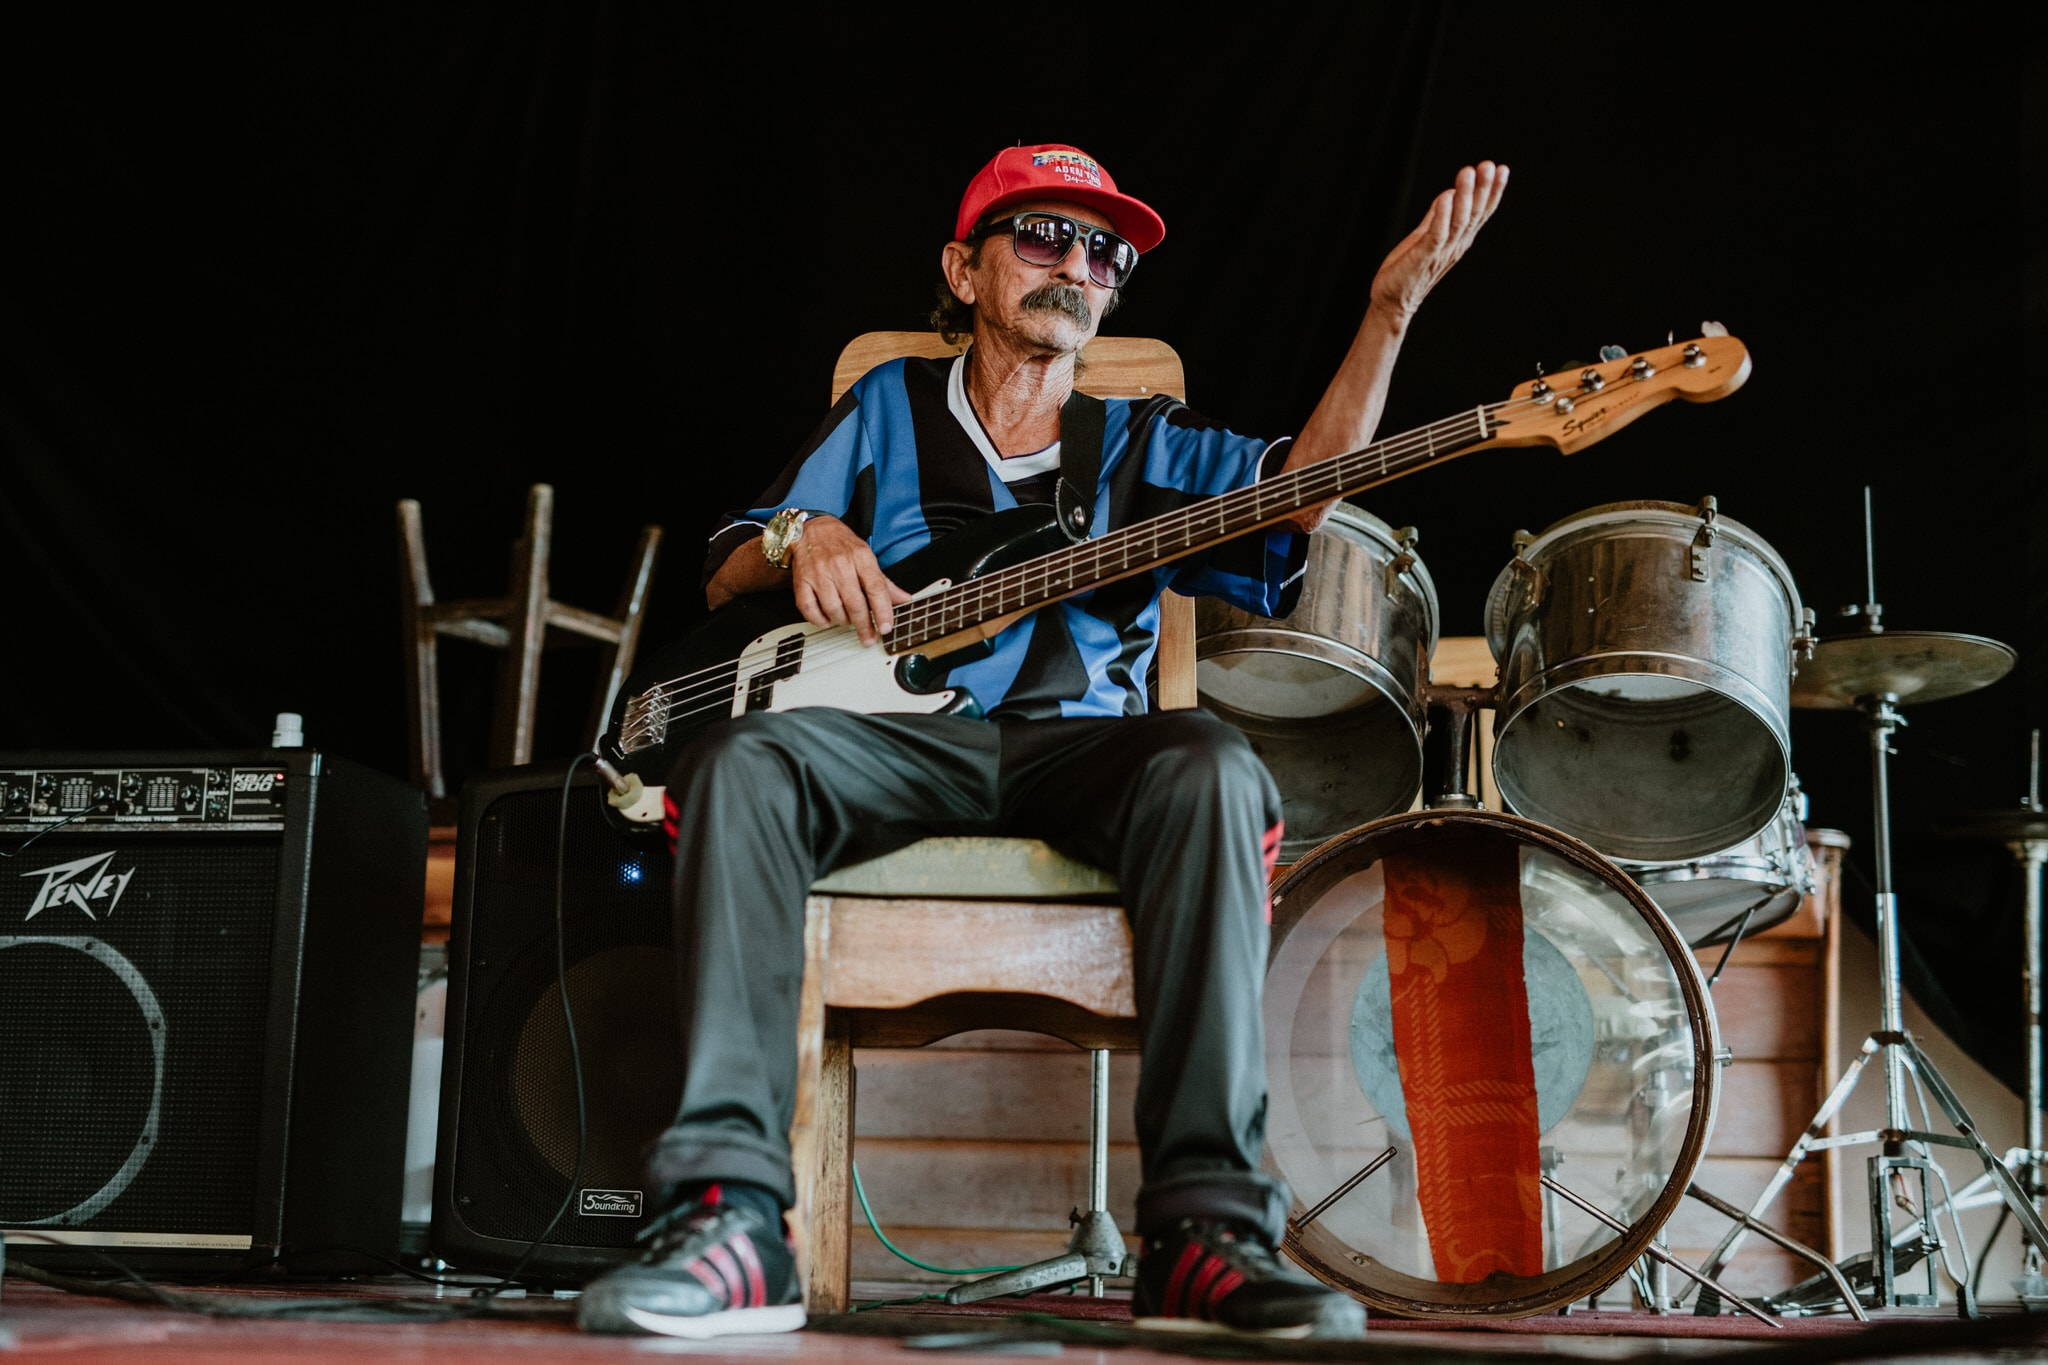 Local musician in Vinales, Cuba. Wedding and travel photographer Brent Calis.